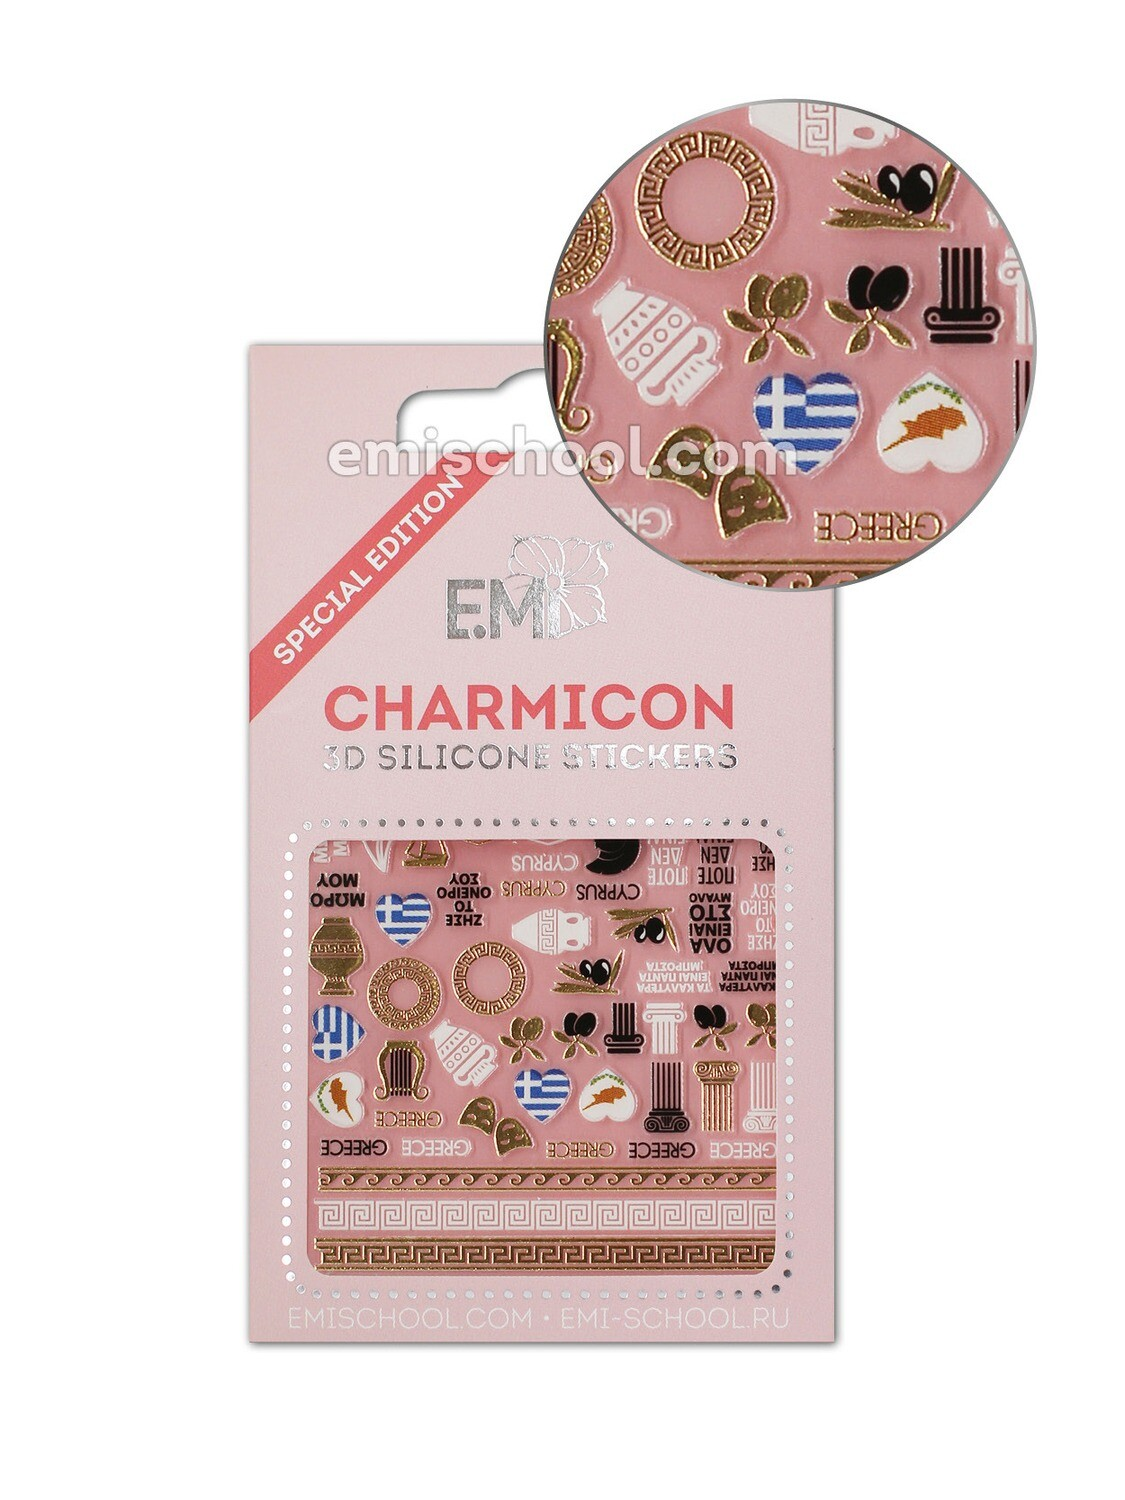 Charmicon 3D Silicone Stickers Greece